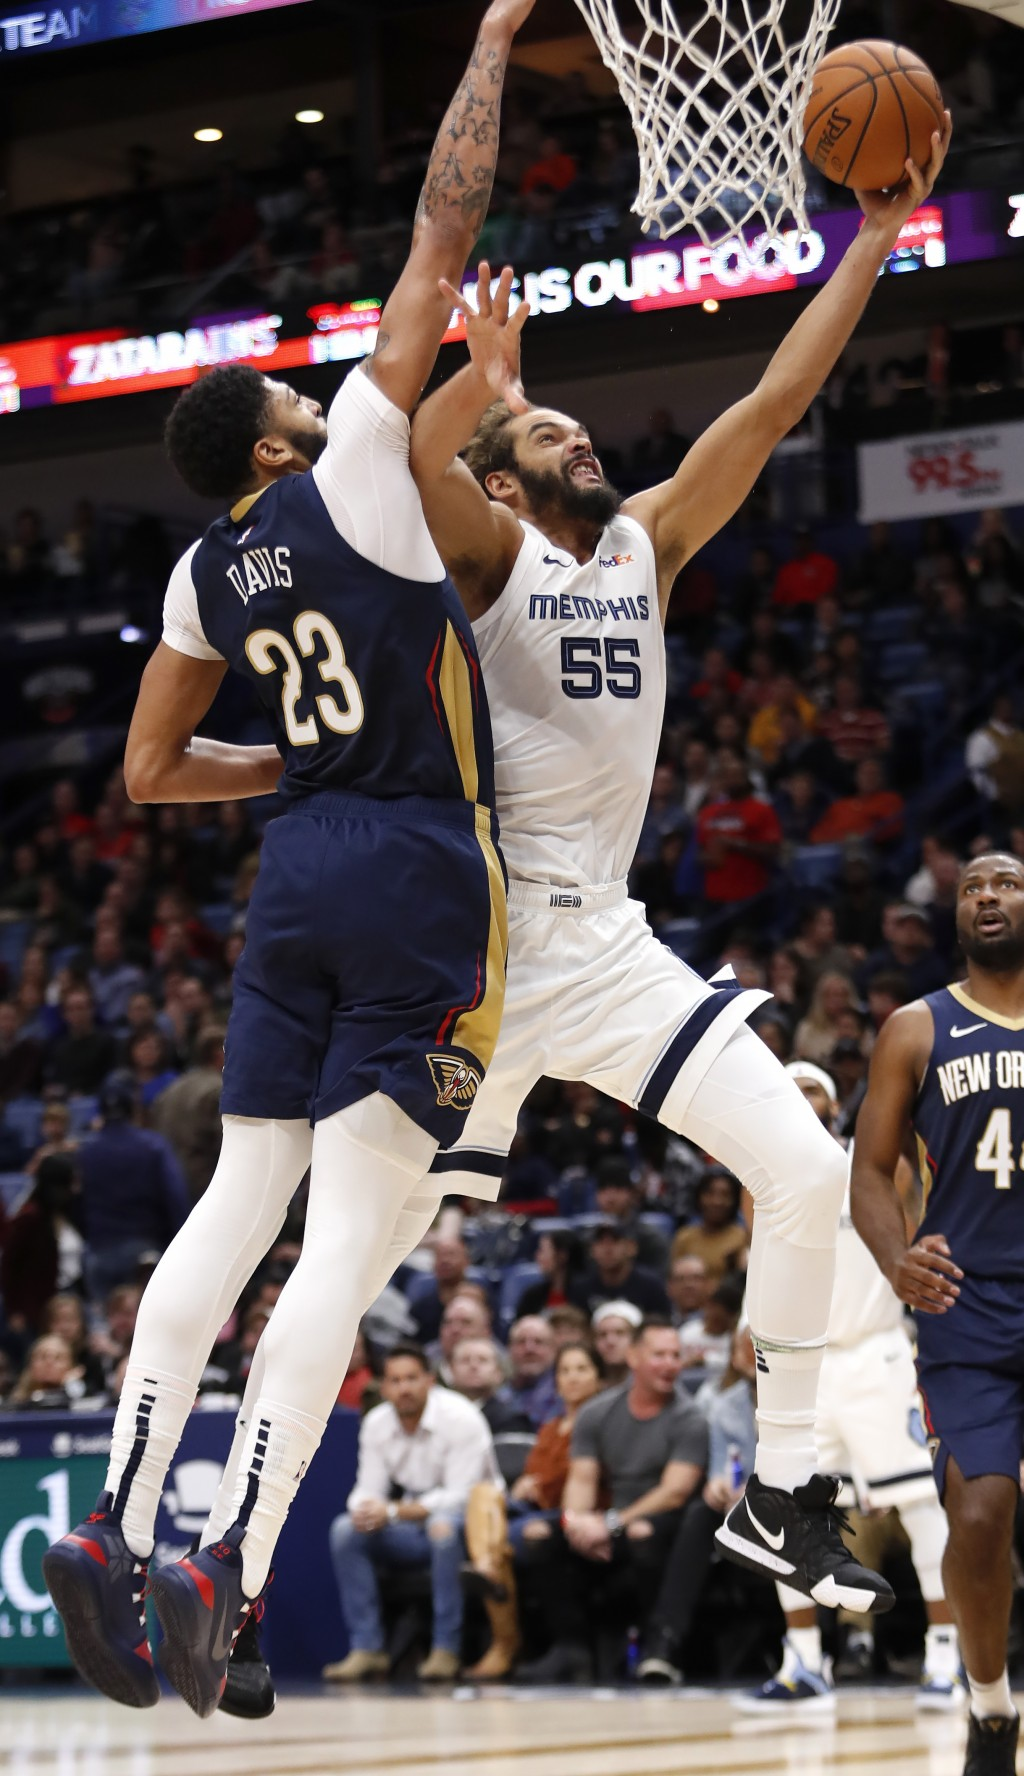 Memphis Grizzlies center Joakim Noah (55) shoots over New Orleans Pelicans forward Anthony Davis (23) in the first half of an NBA basketball game in N